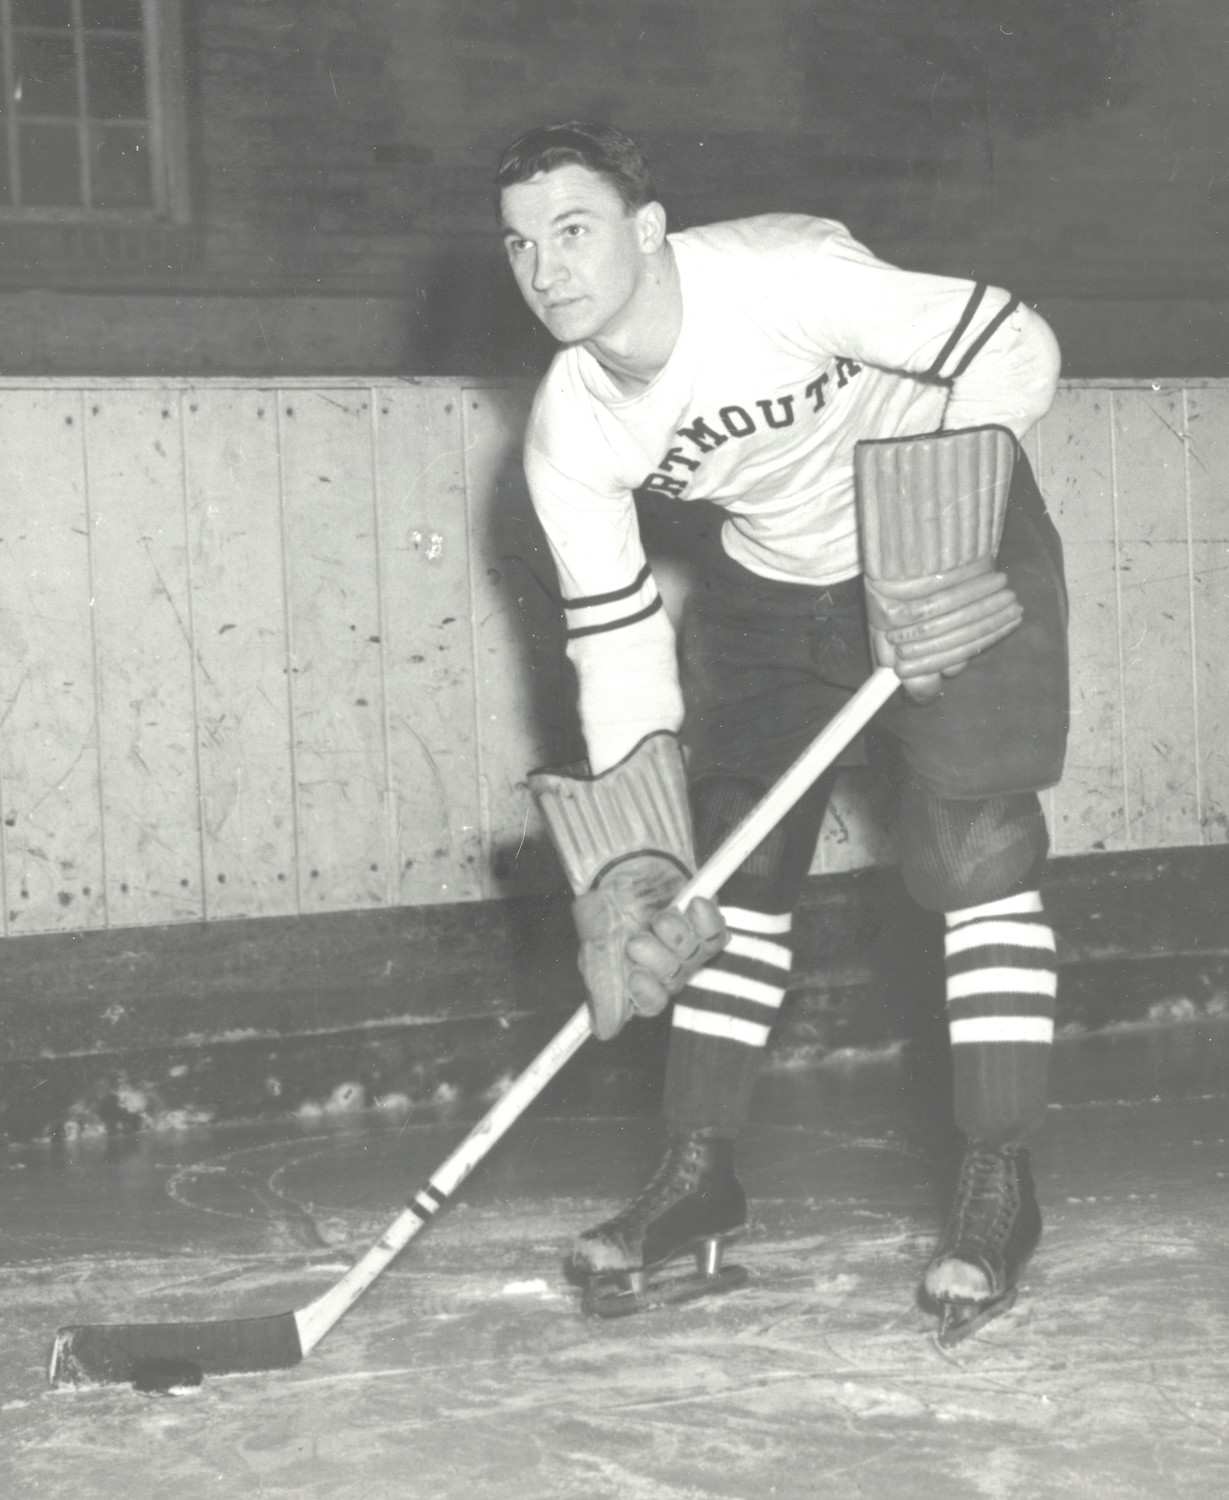 SUPER SCORER: Cranston native Ralph Warburton helped Dartmouth College become one of the nation's most powerful hockey programs back in the 1940s. (Submitted photo)